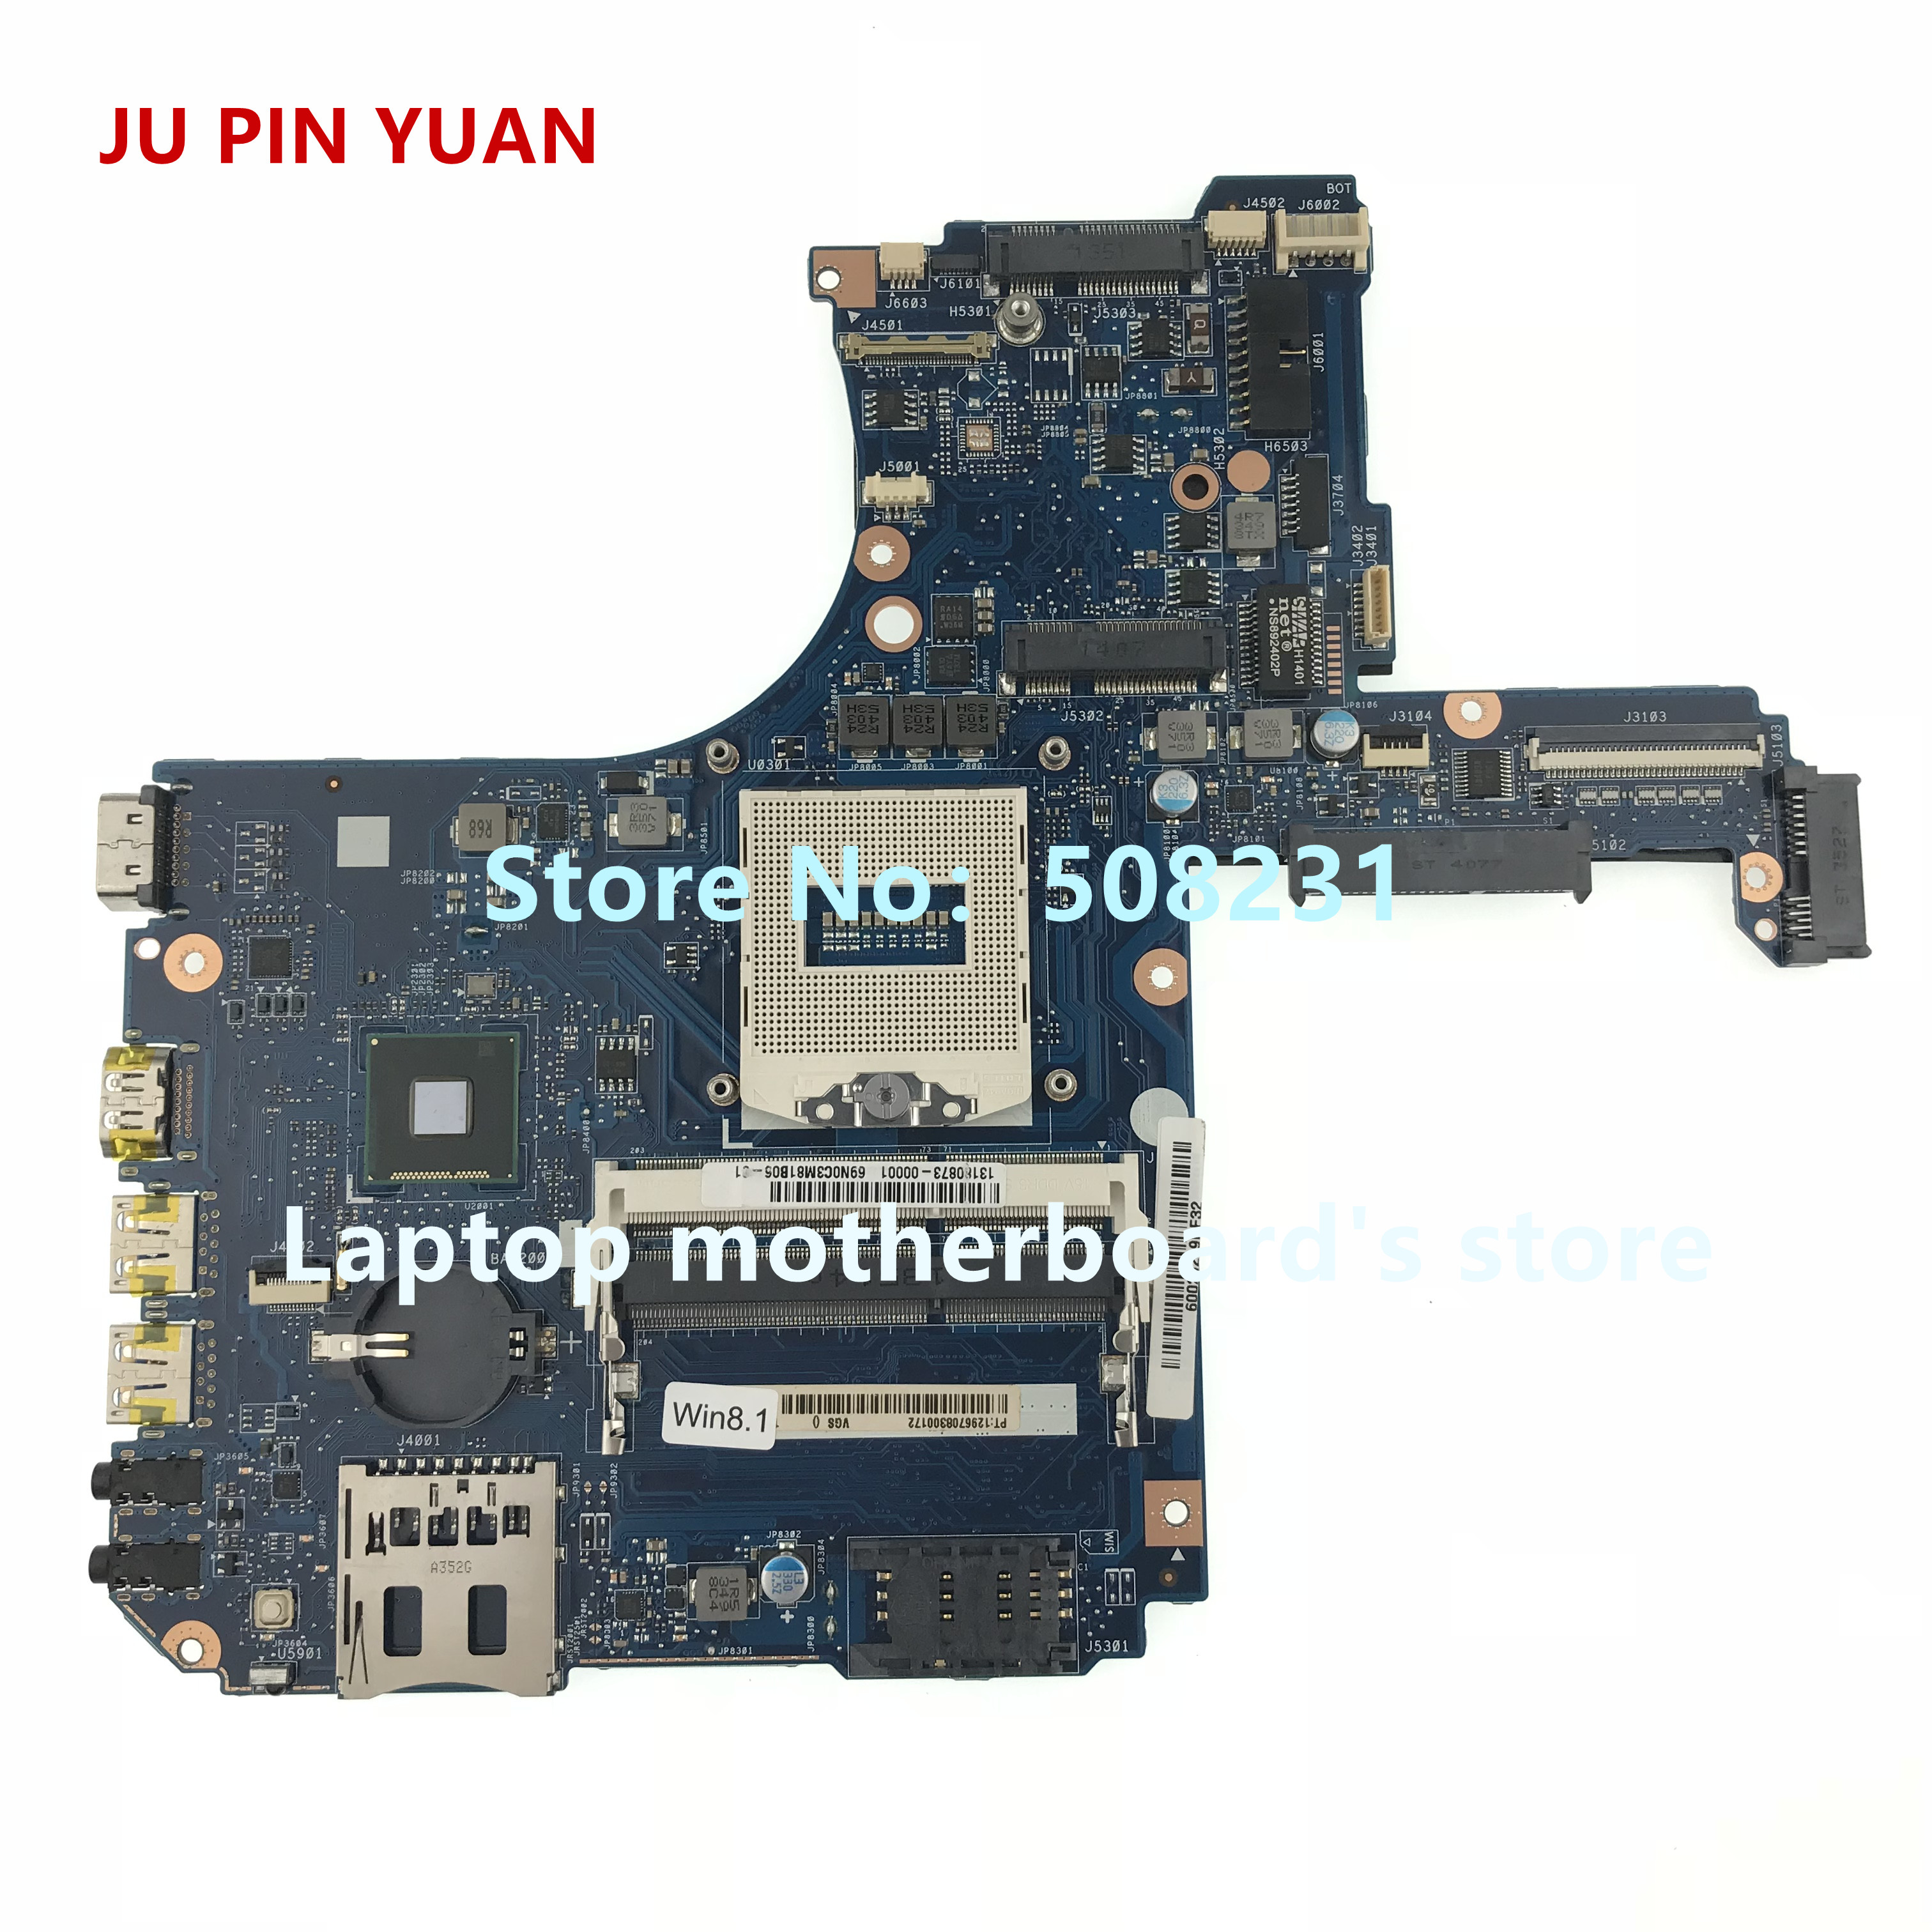 JU PIN YUAN H000055990 mainboard For Toshiba Satellite P50-A P50T-A P55-A laptop motherboard socket PGA 947 HM86 DDR3LJU PIN YUAN H000055990 mainboard For Toshiba Satellite P50-A P50T-A P55-A laptop motherboard socket PGA 947 HM86 DDR3L